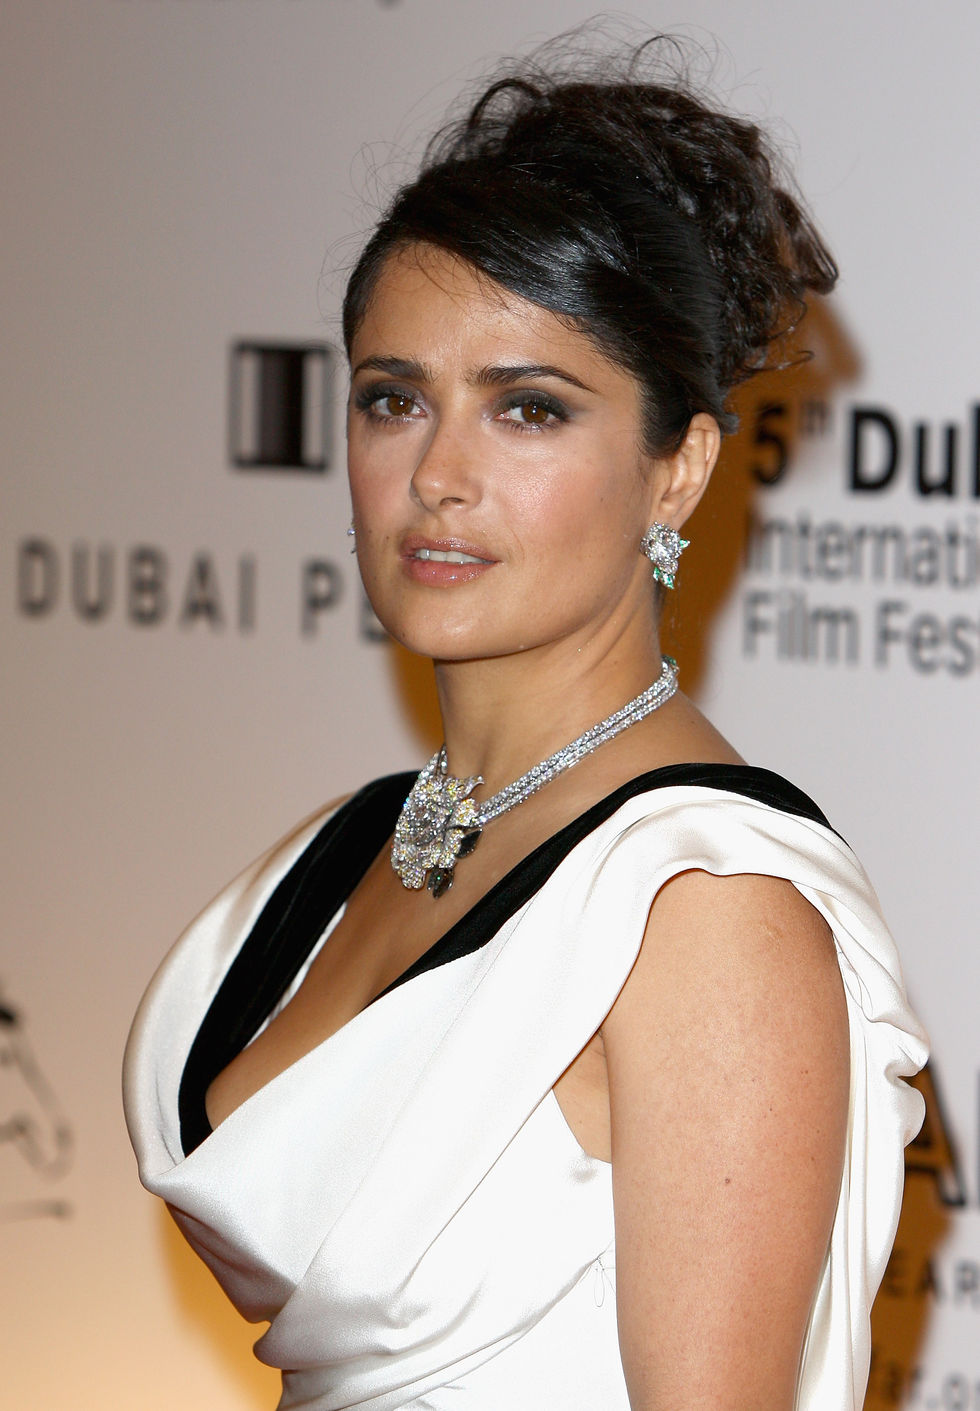 Mexican American actress Salma Hayek In White Dress